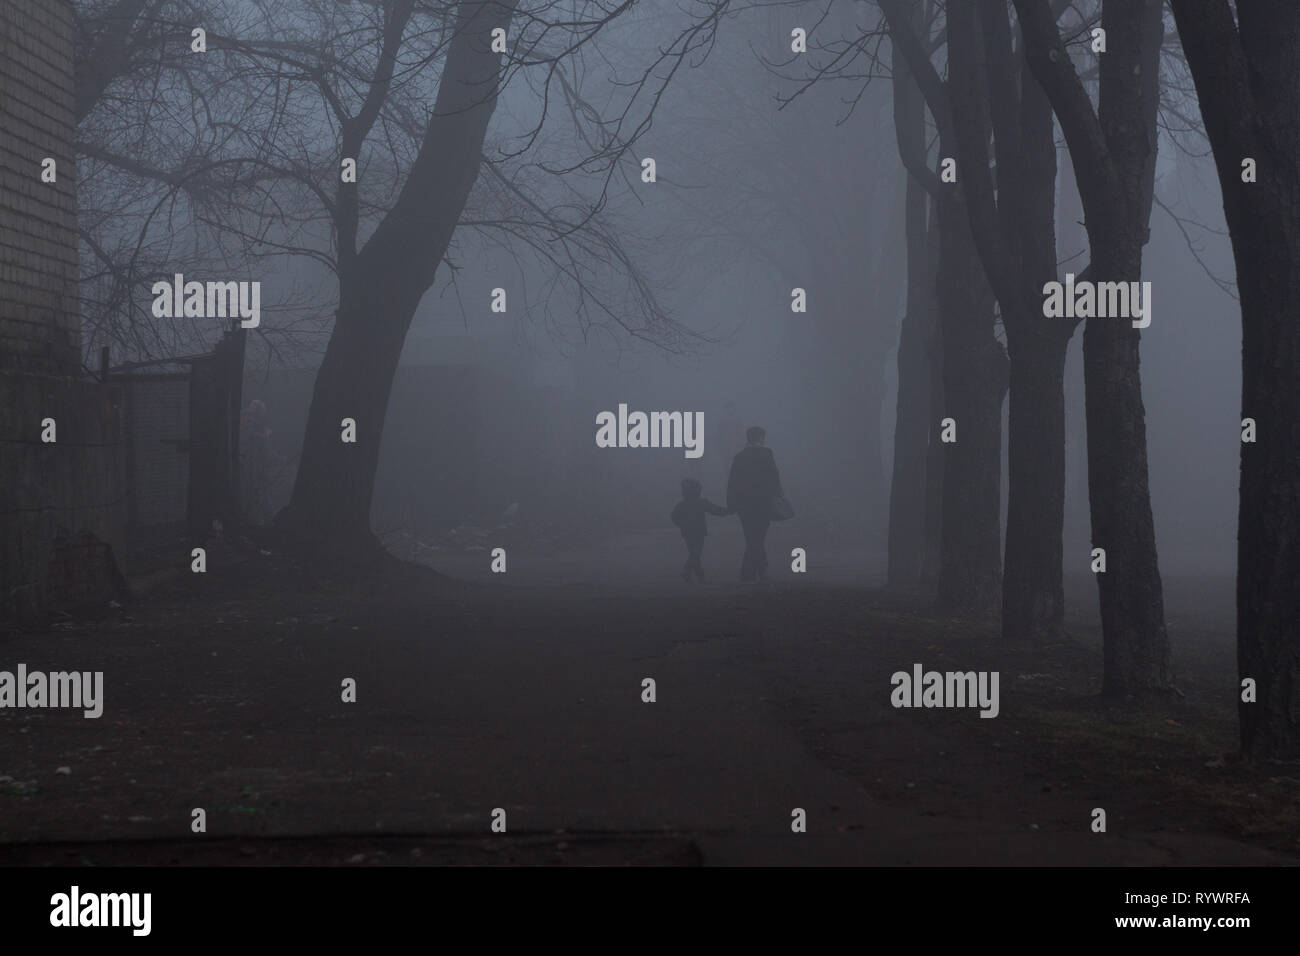 People walking on the street in the thick cryptic fog in Kriviy Rih, Dnipropetrovsk region, Ukraine - Stock Image